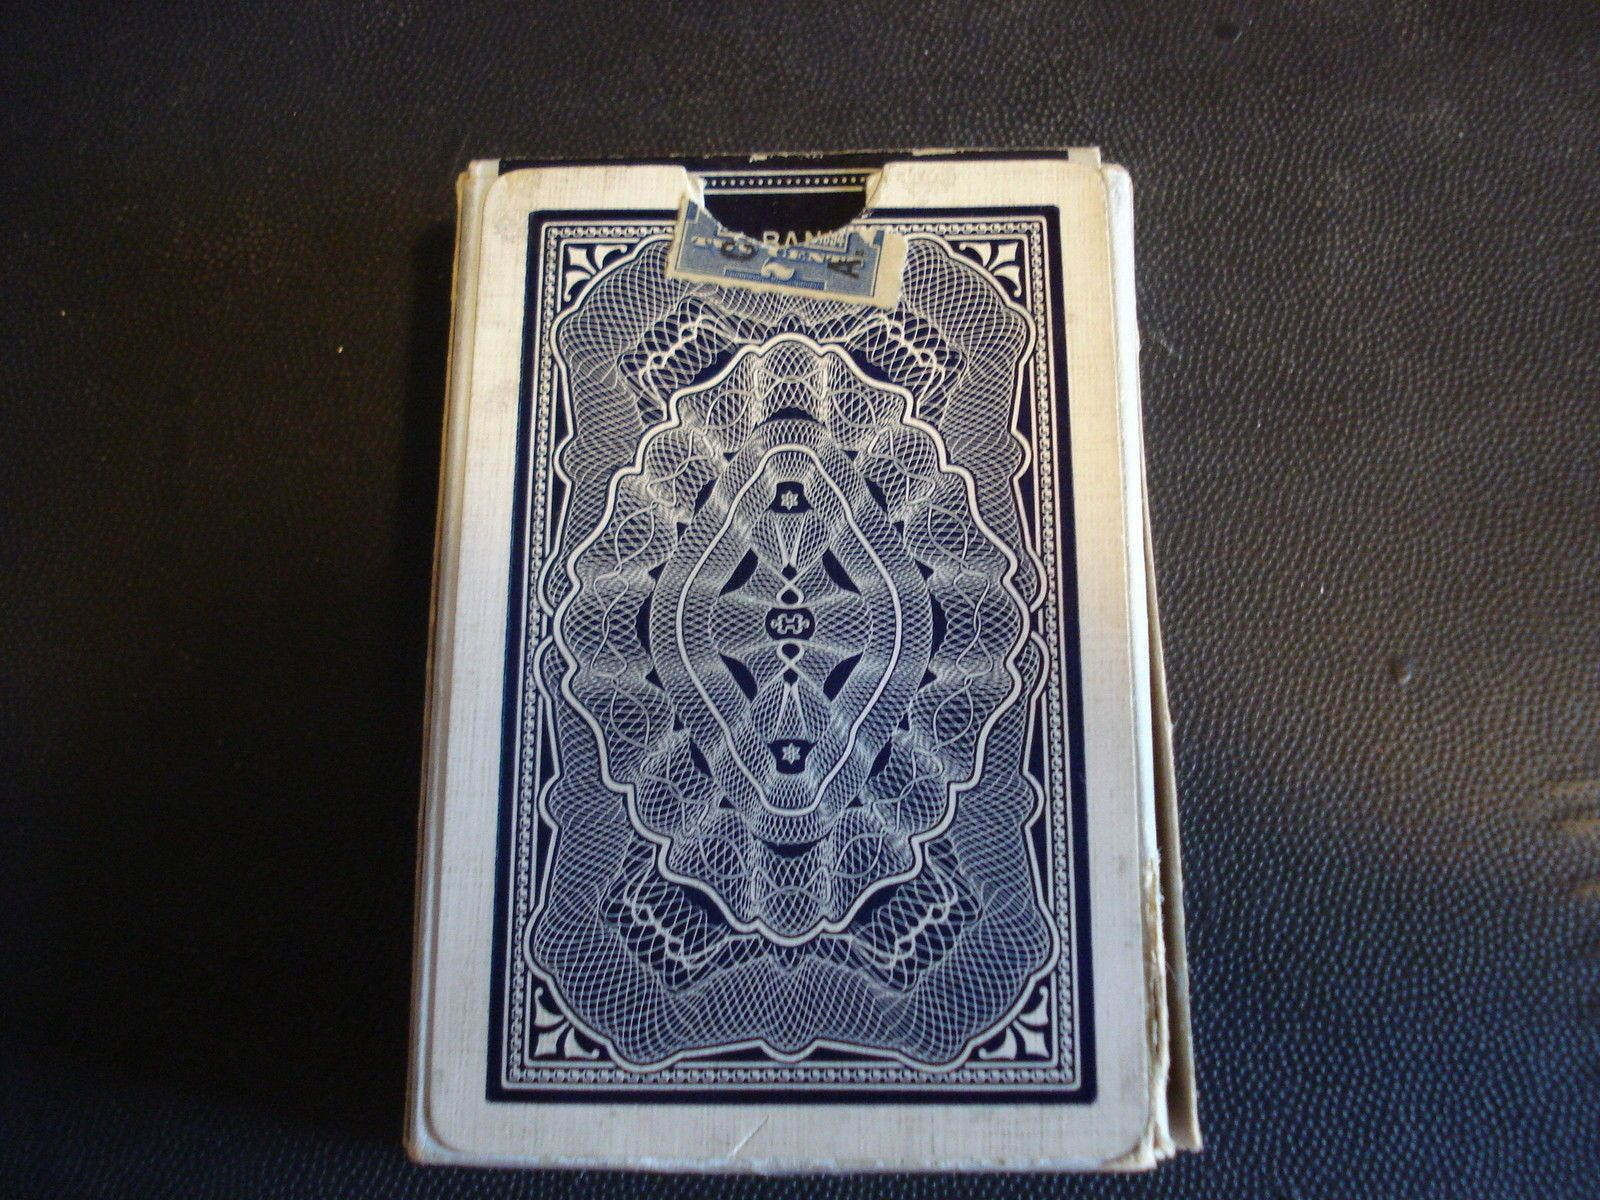 American Bank Note Company Playing Cards Antique Original | eBay